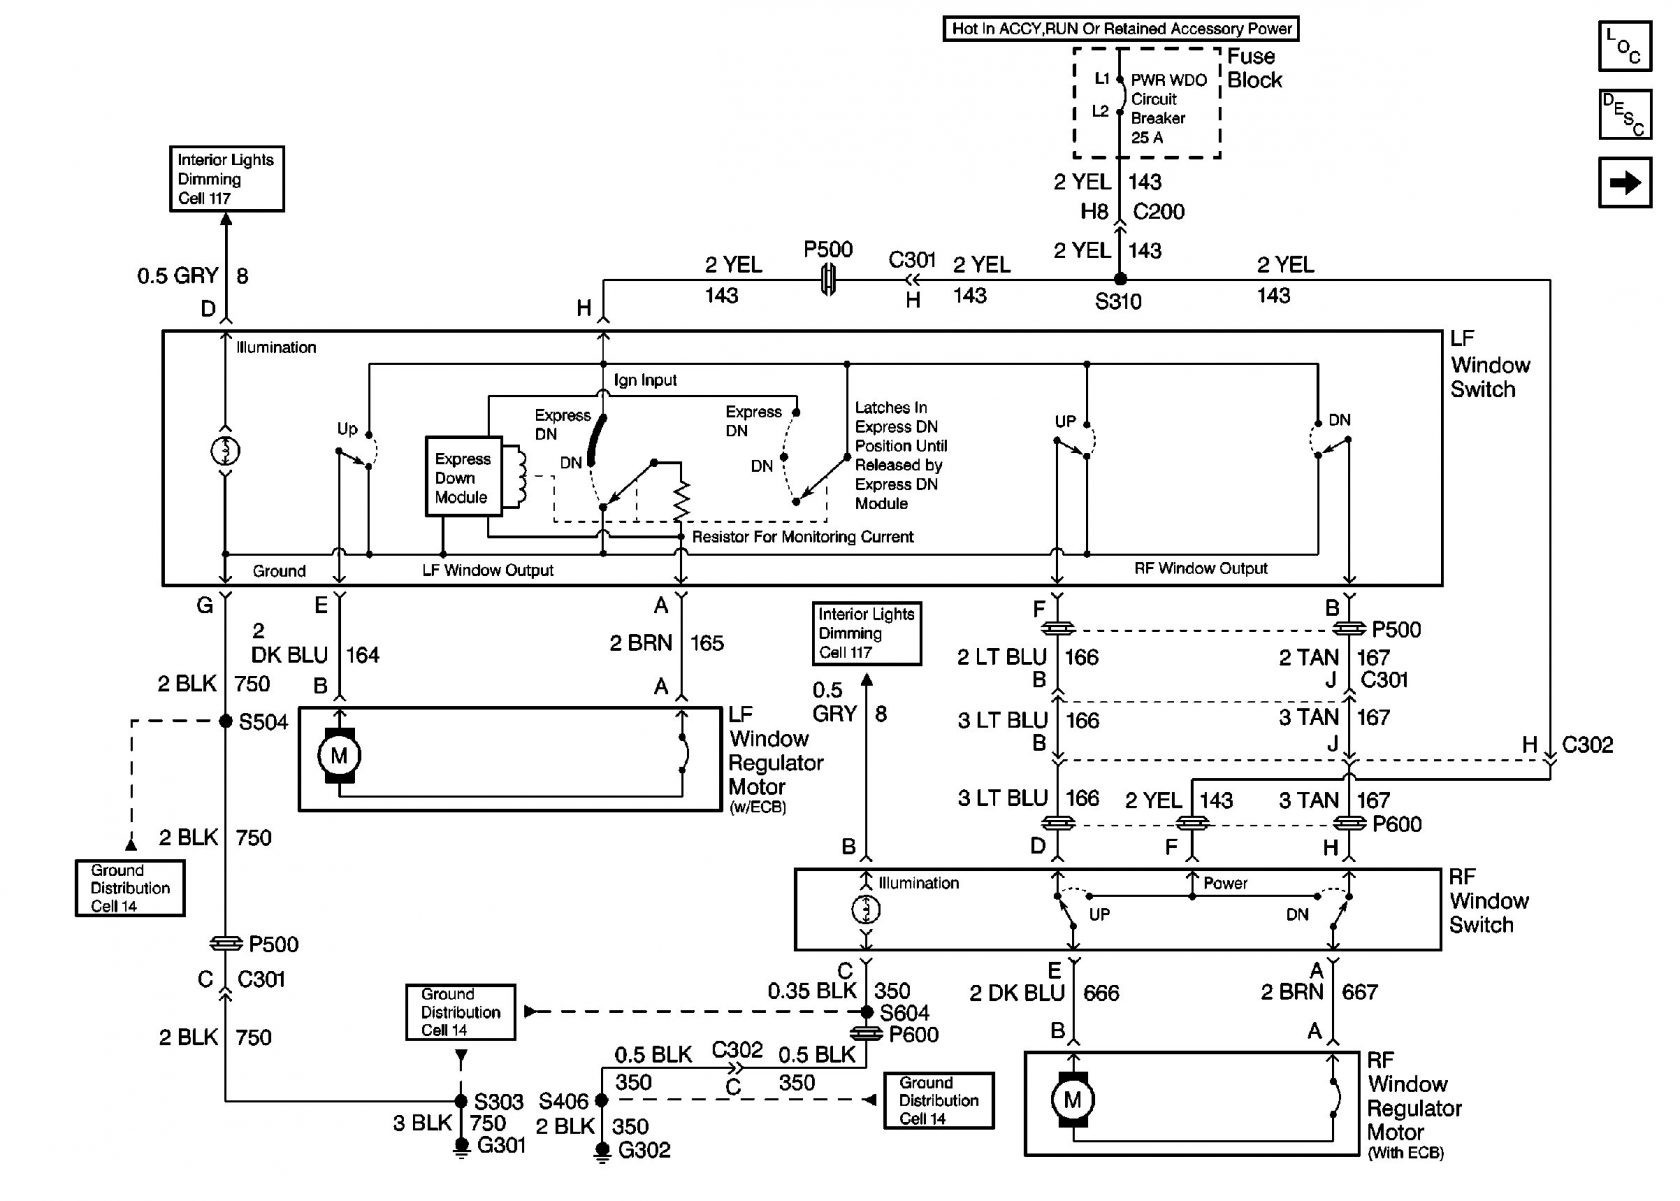 hight resolution of subaru forester engine diagram 2006 2015 subaru forester impreza wrx related post